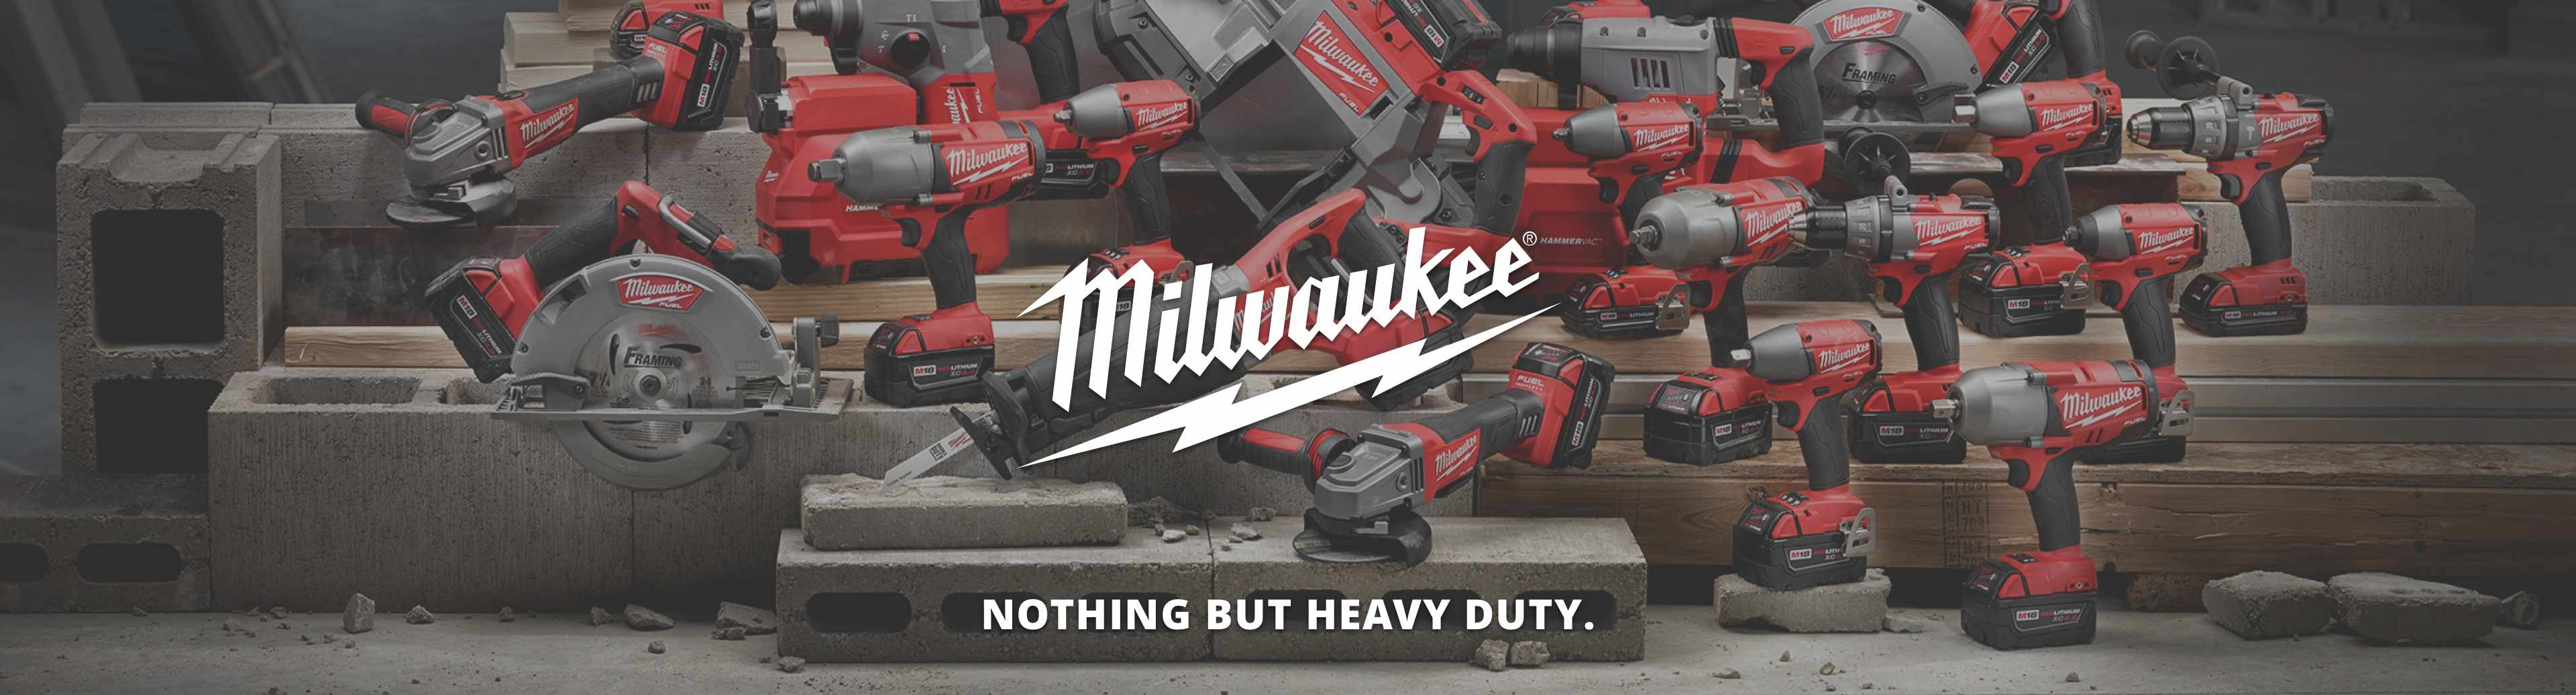 Shop Milwaukee power tools from Rex Hardware